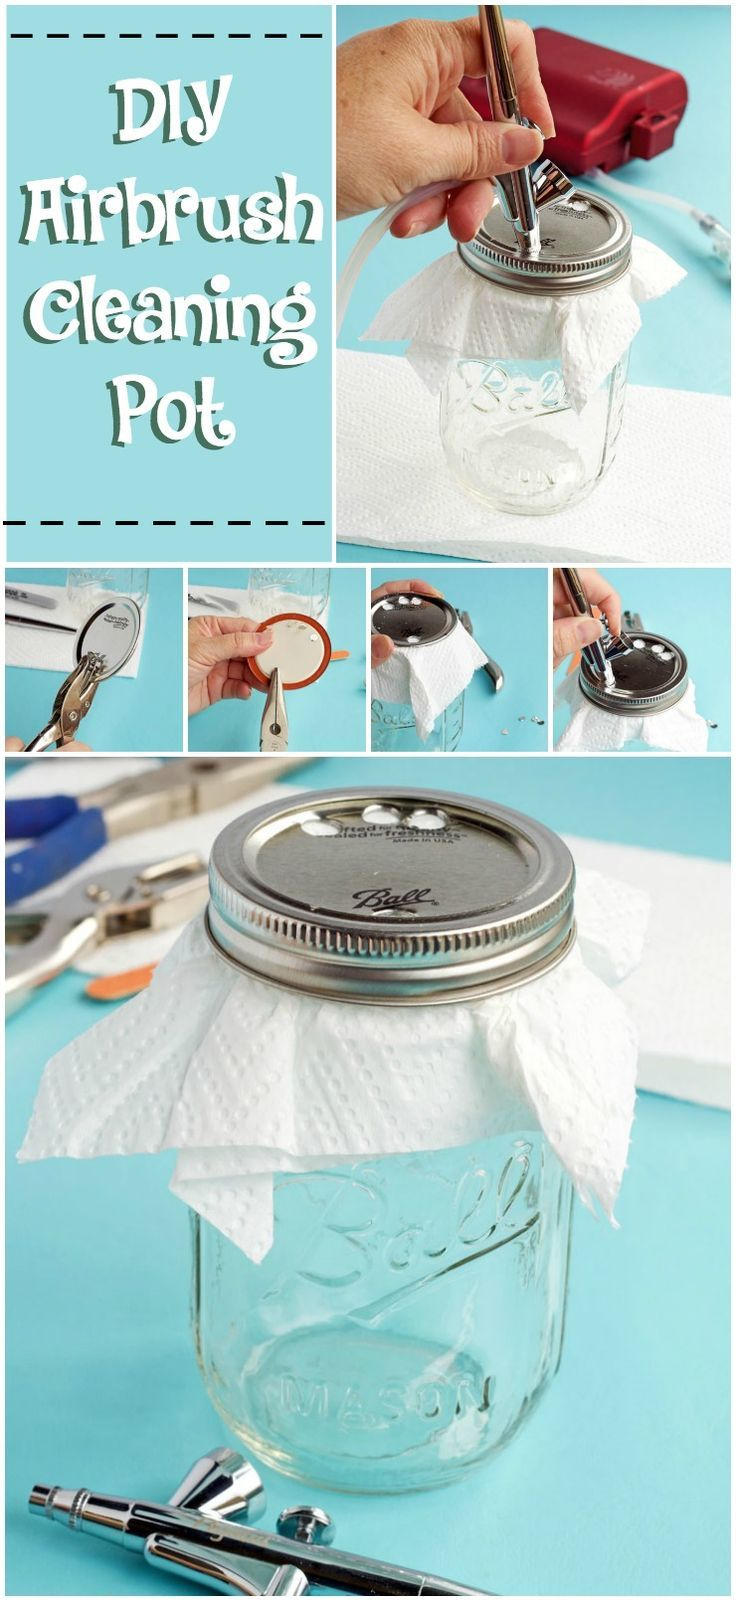 You Have to See This! A DIY Airbrush Cleaning Pot | The Bearfoot Baker